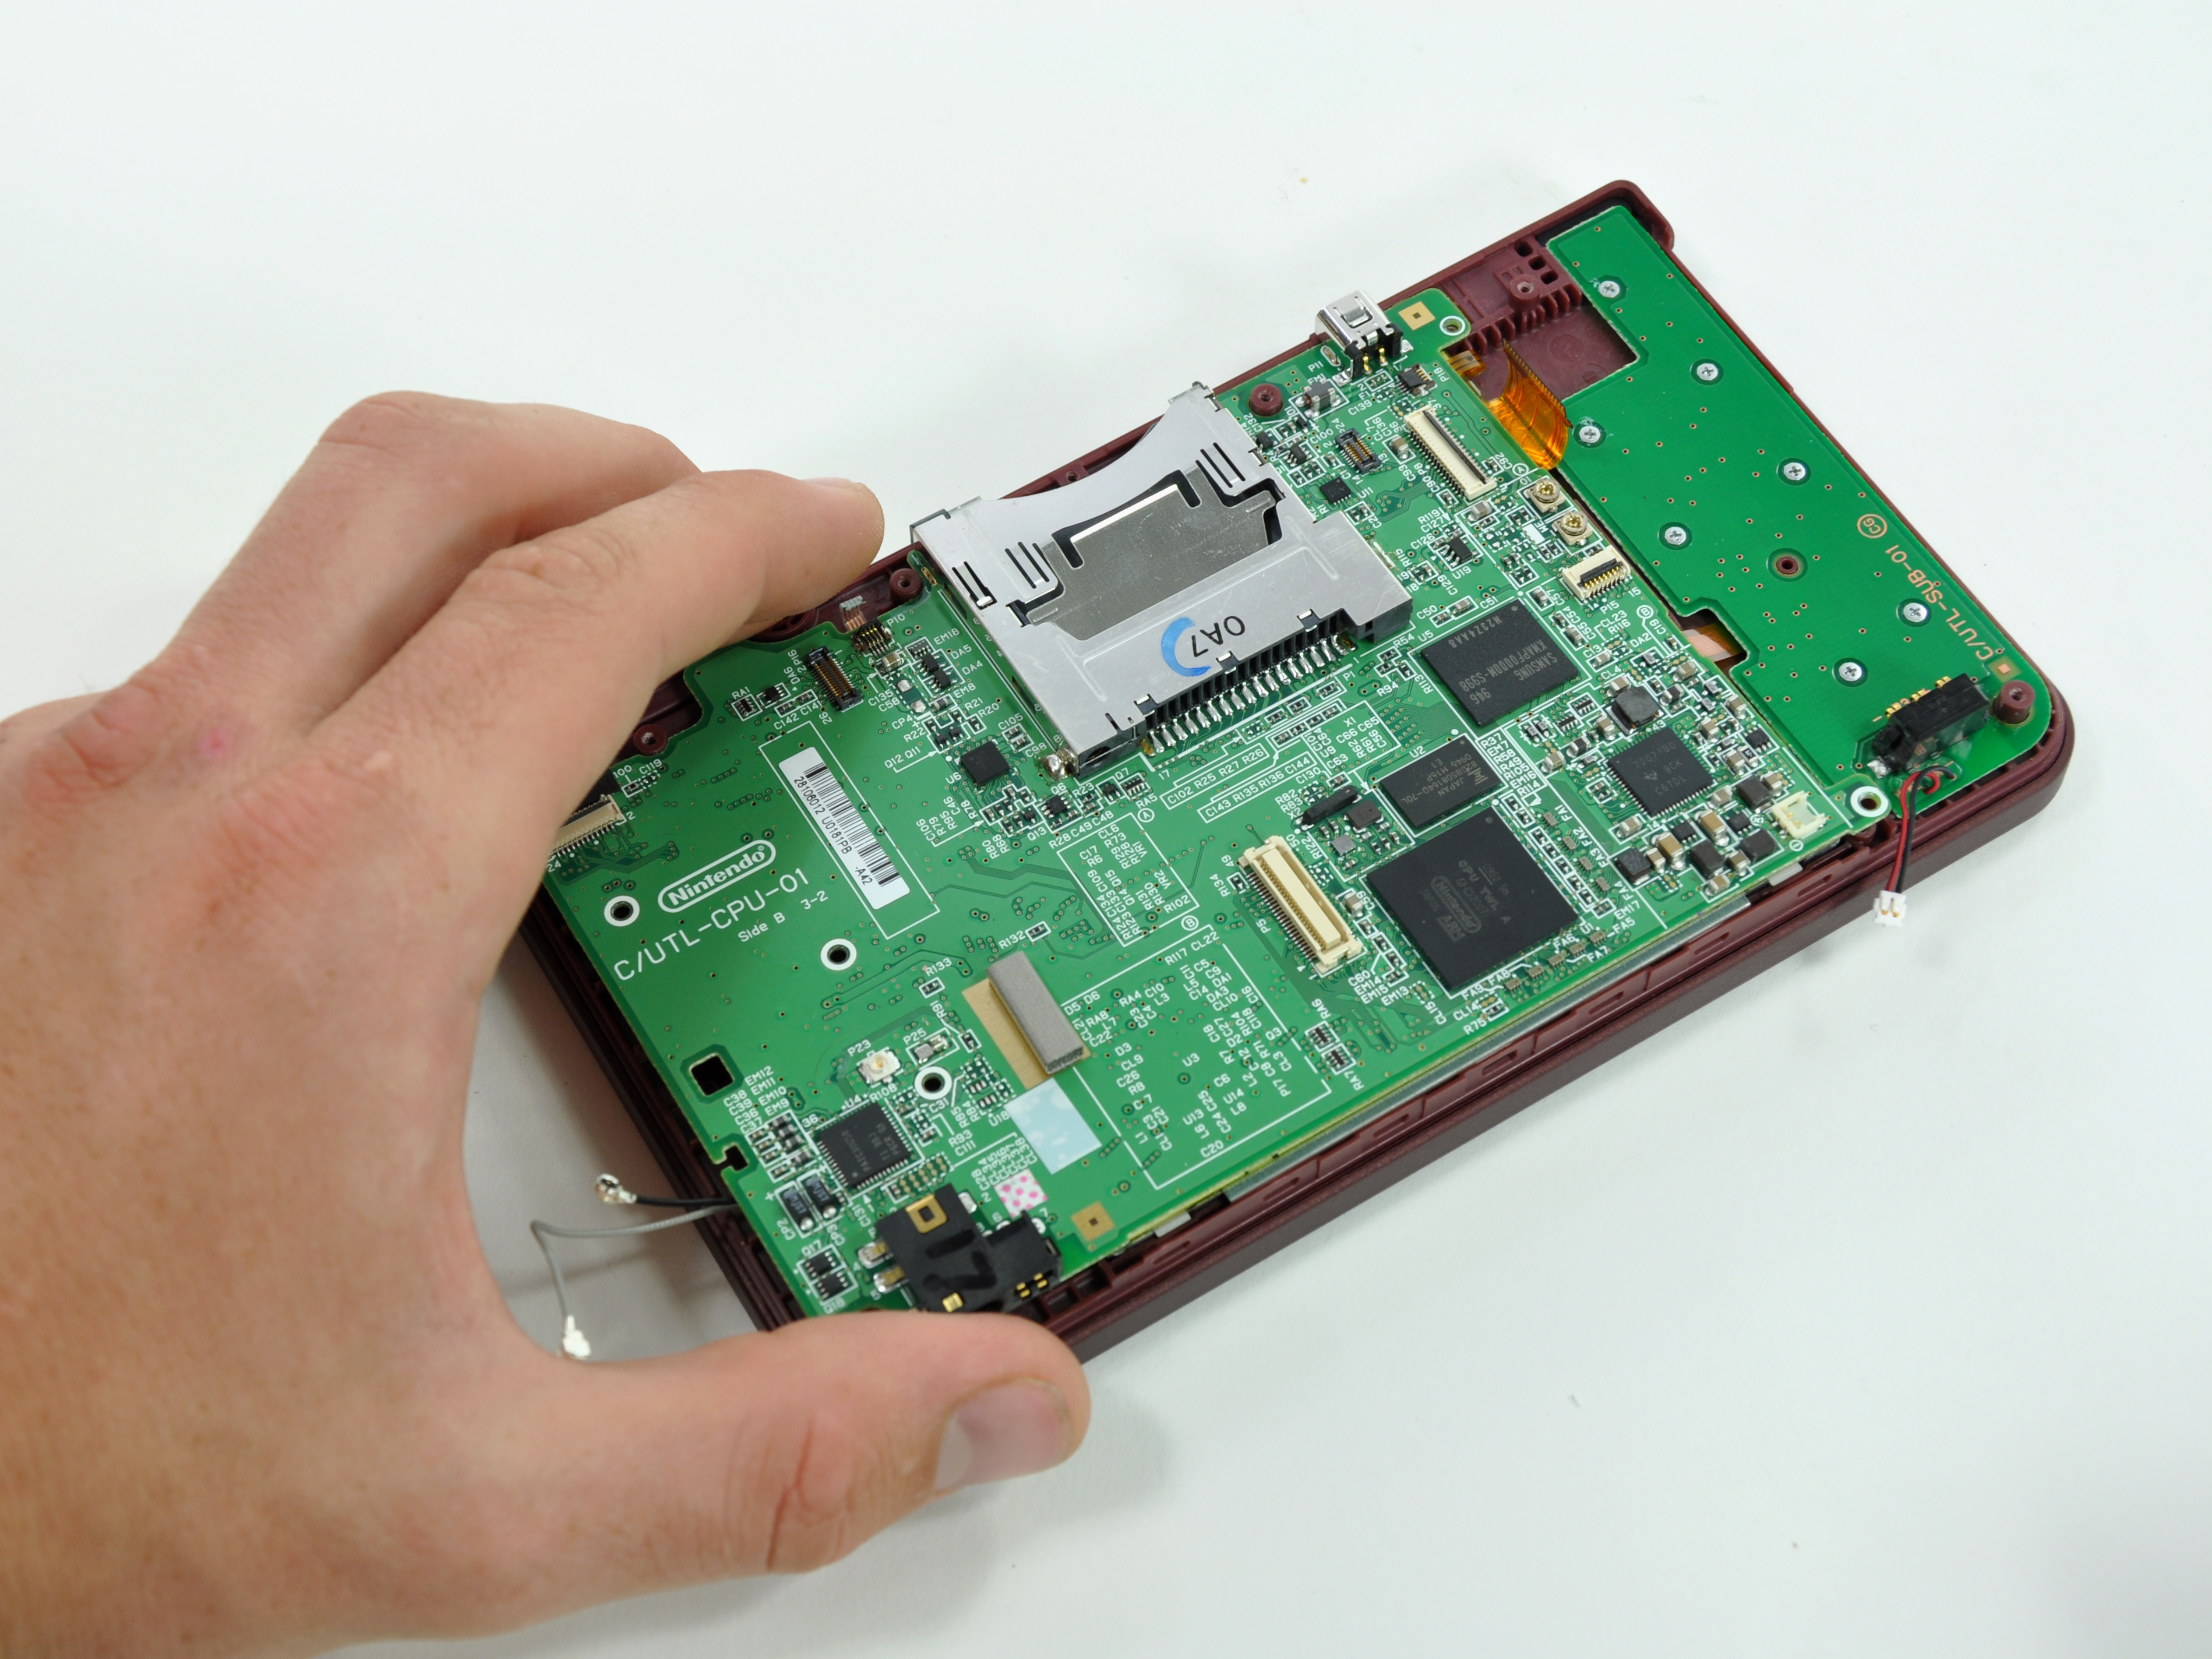 Nintendo Dsi Xl Motherboard Replacement Ifixit Repair Guide - Laptop Brett